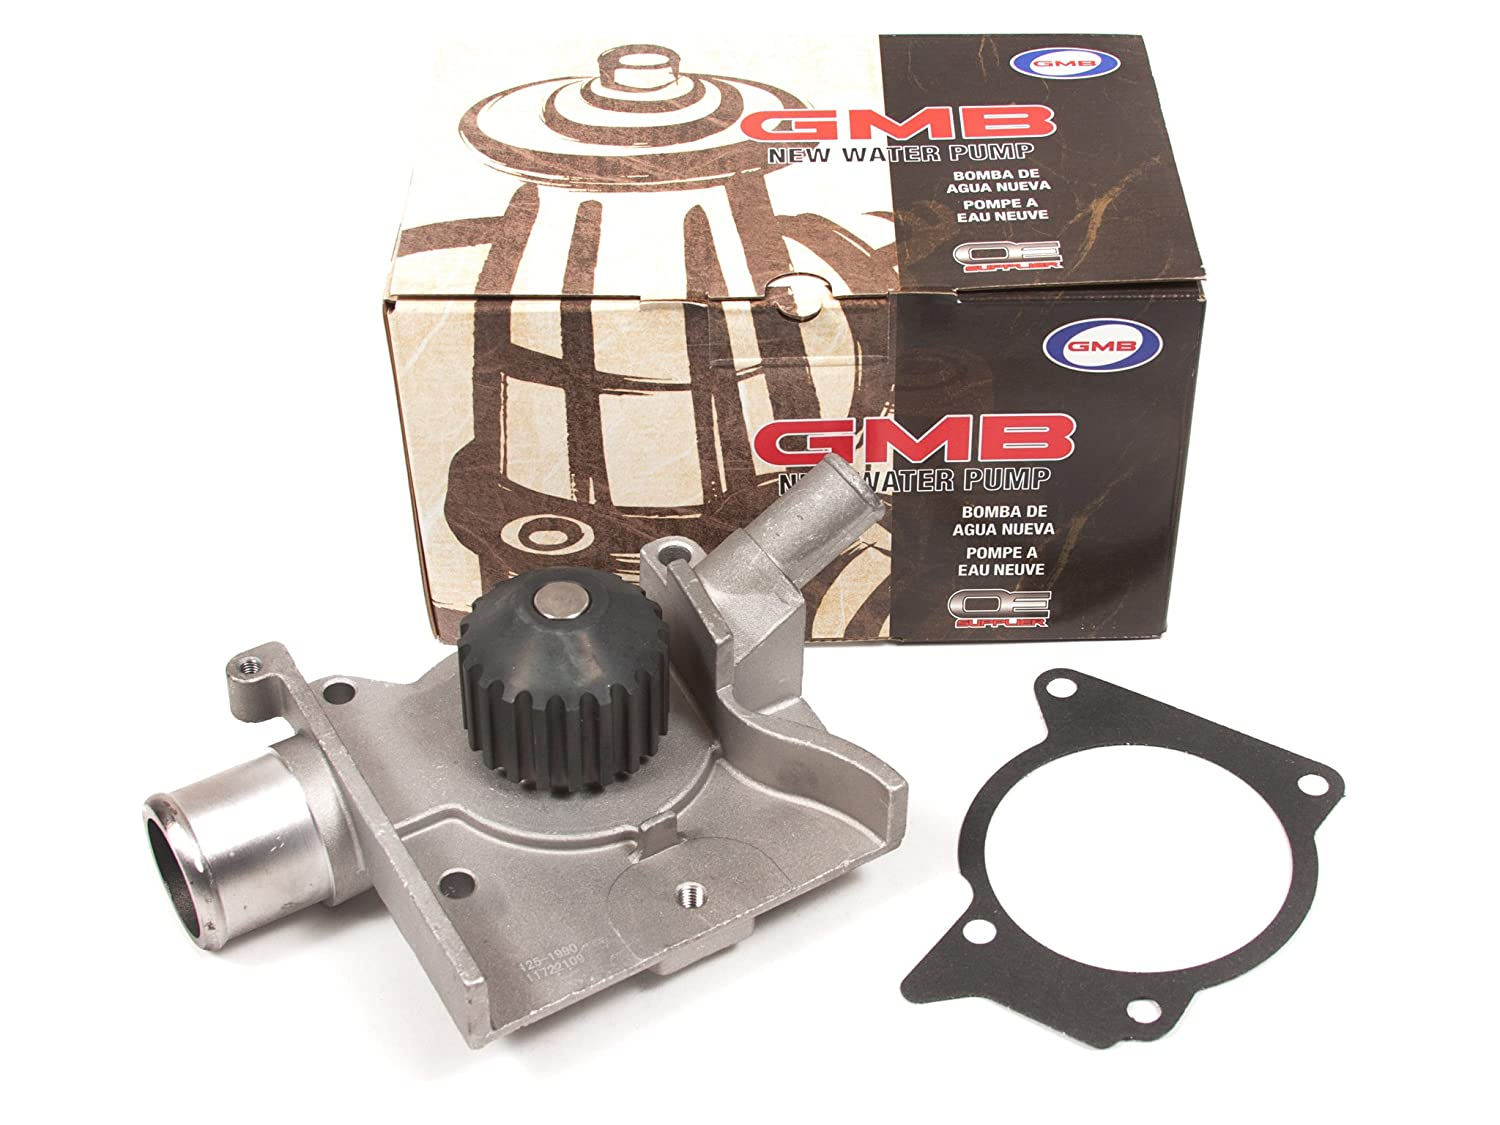 Amazon.com: Evergreen TBK283WP 97-02 Ford Escort Mercury Tracer 2.0L VIN Code P Timing Belt Kit GMB Water Pump: Automotive